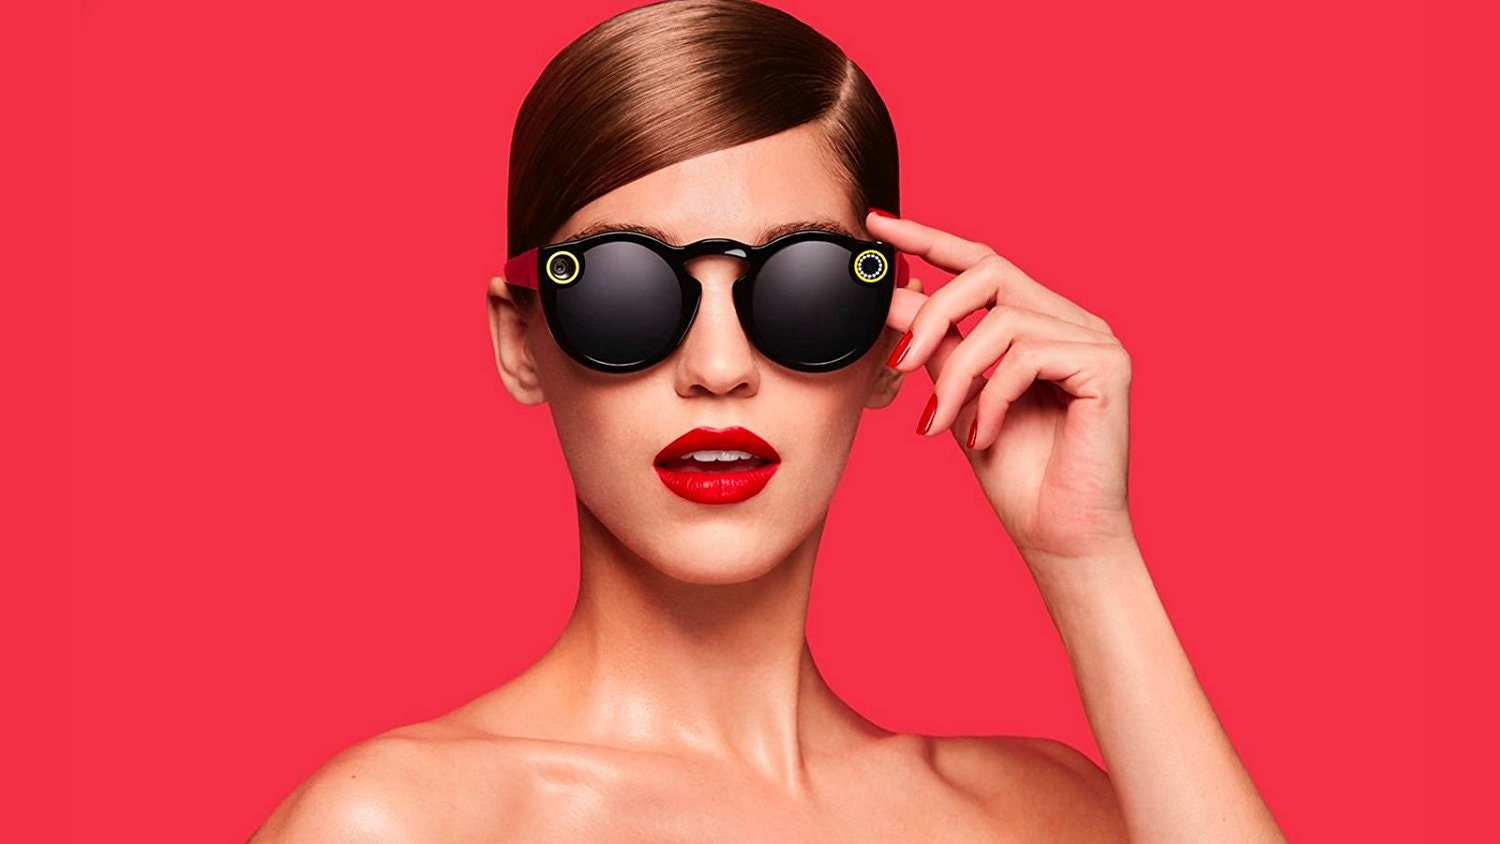 Snap starts selling Spectacles online for $130